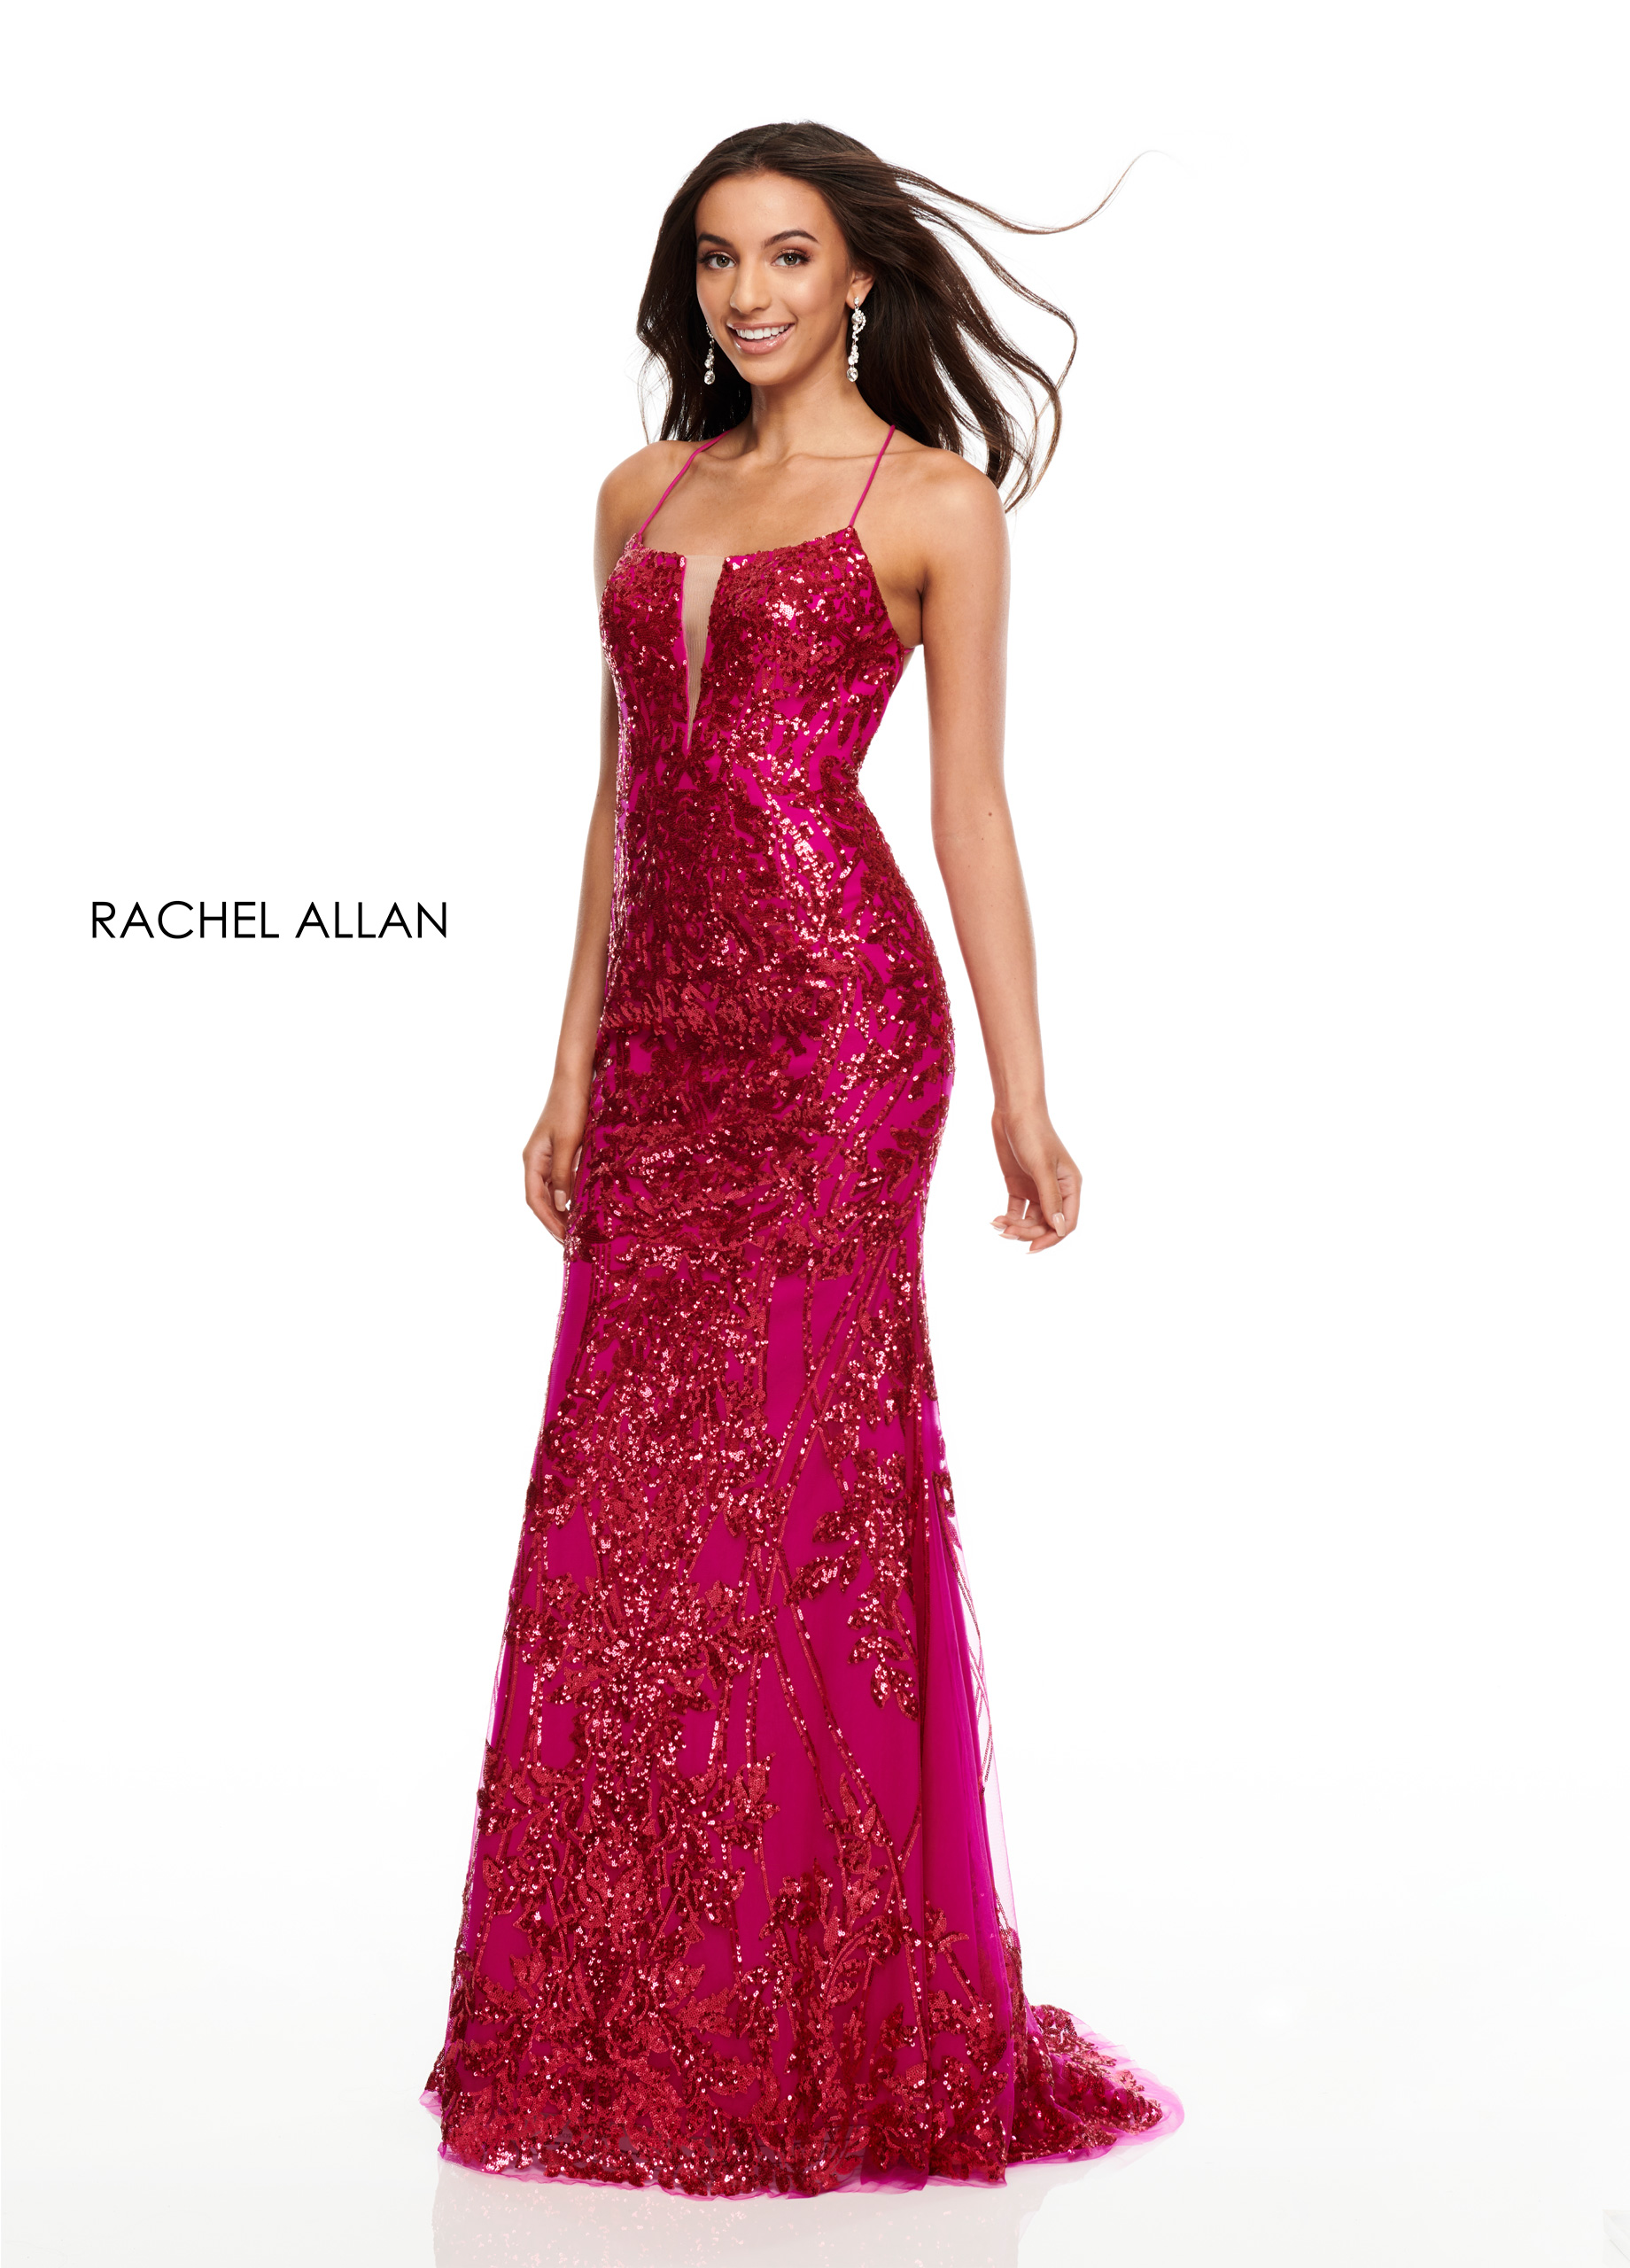 V-Neck Fitted Long Prom Dresses in Magenta Color